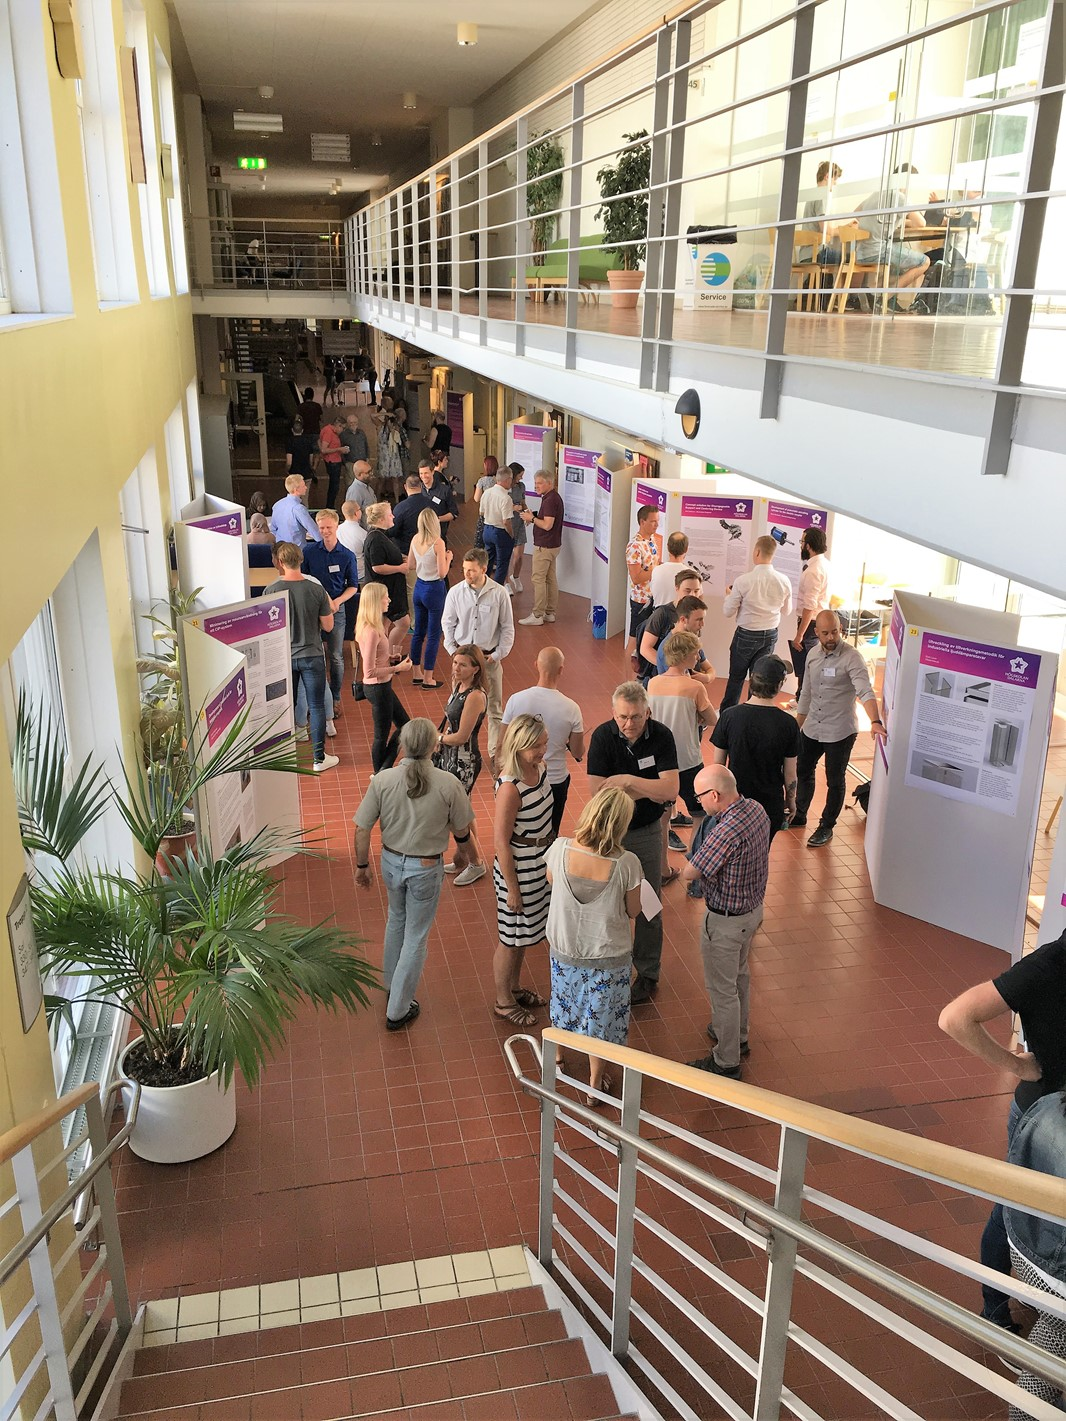 Mingle at Expo Borlänge 2018